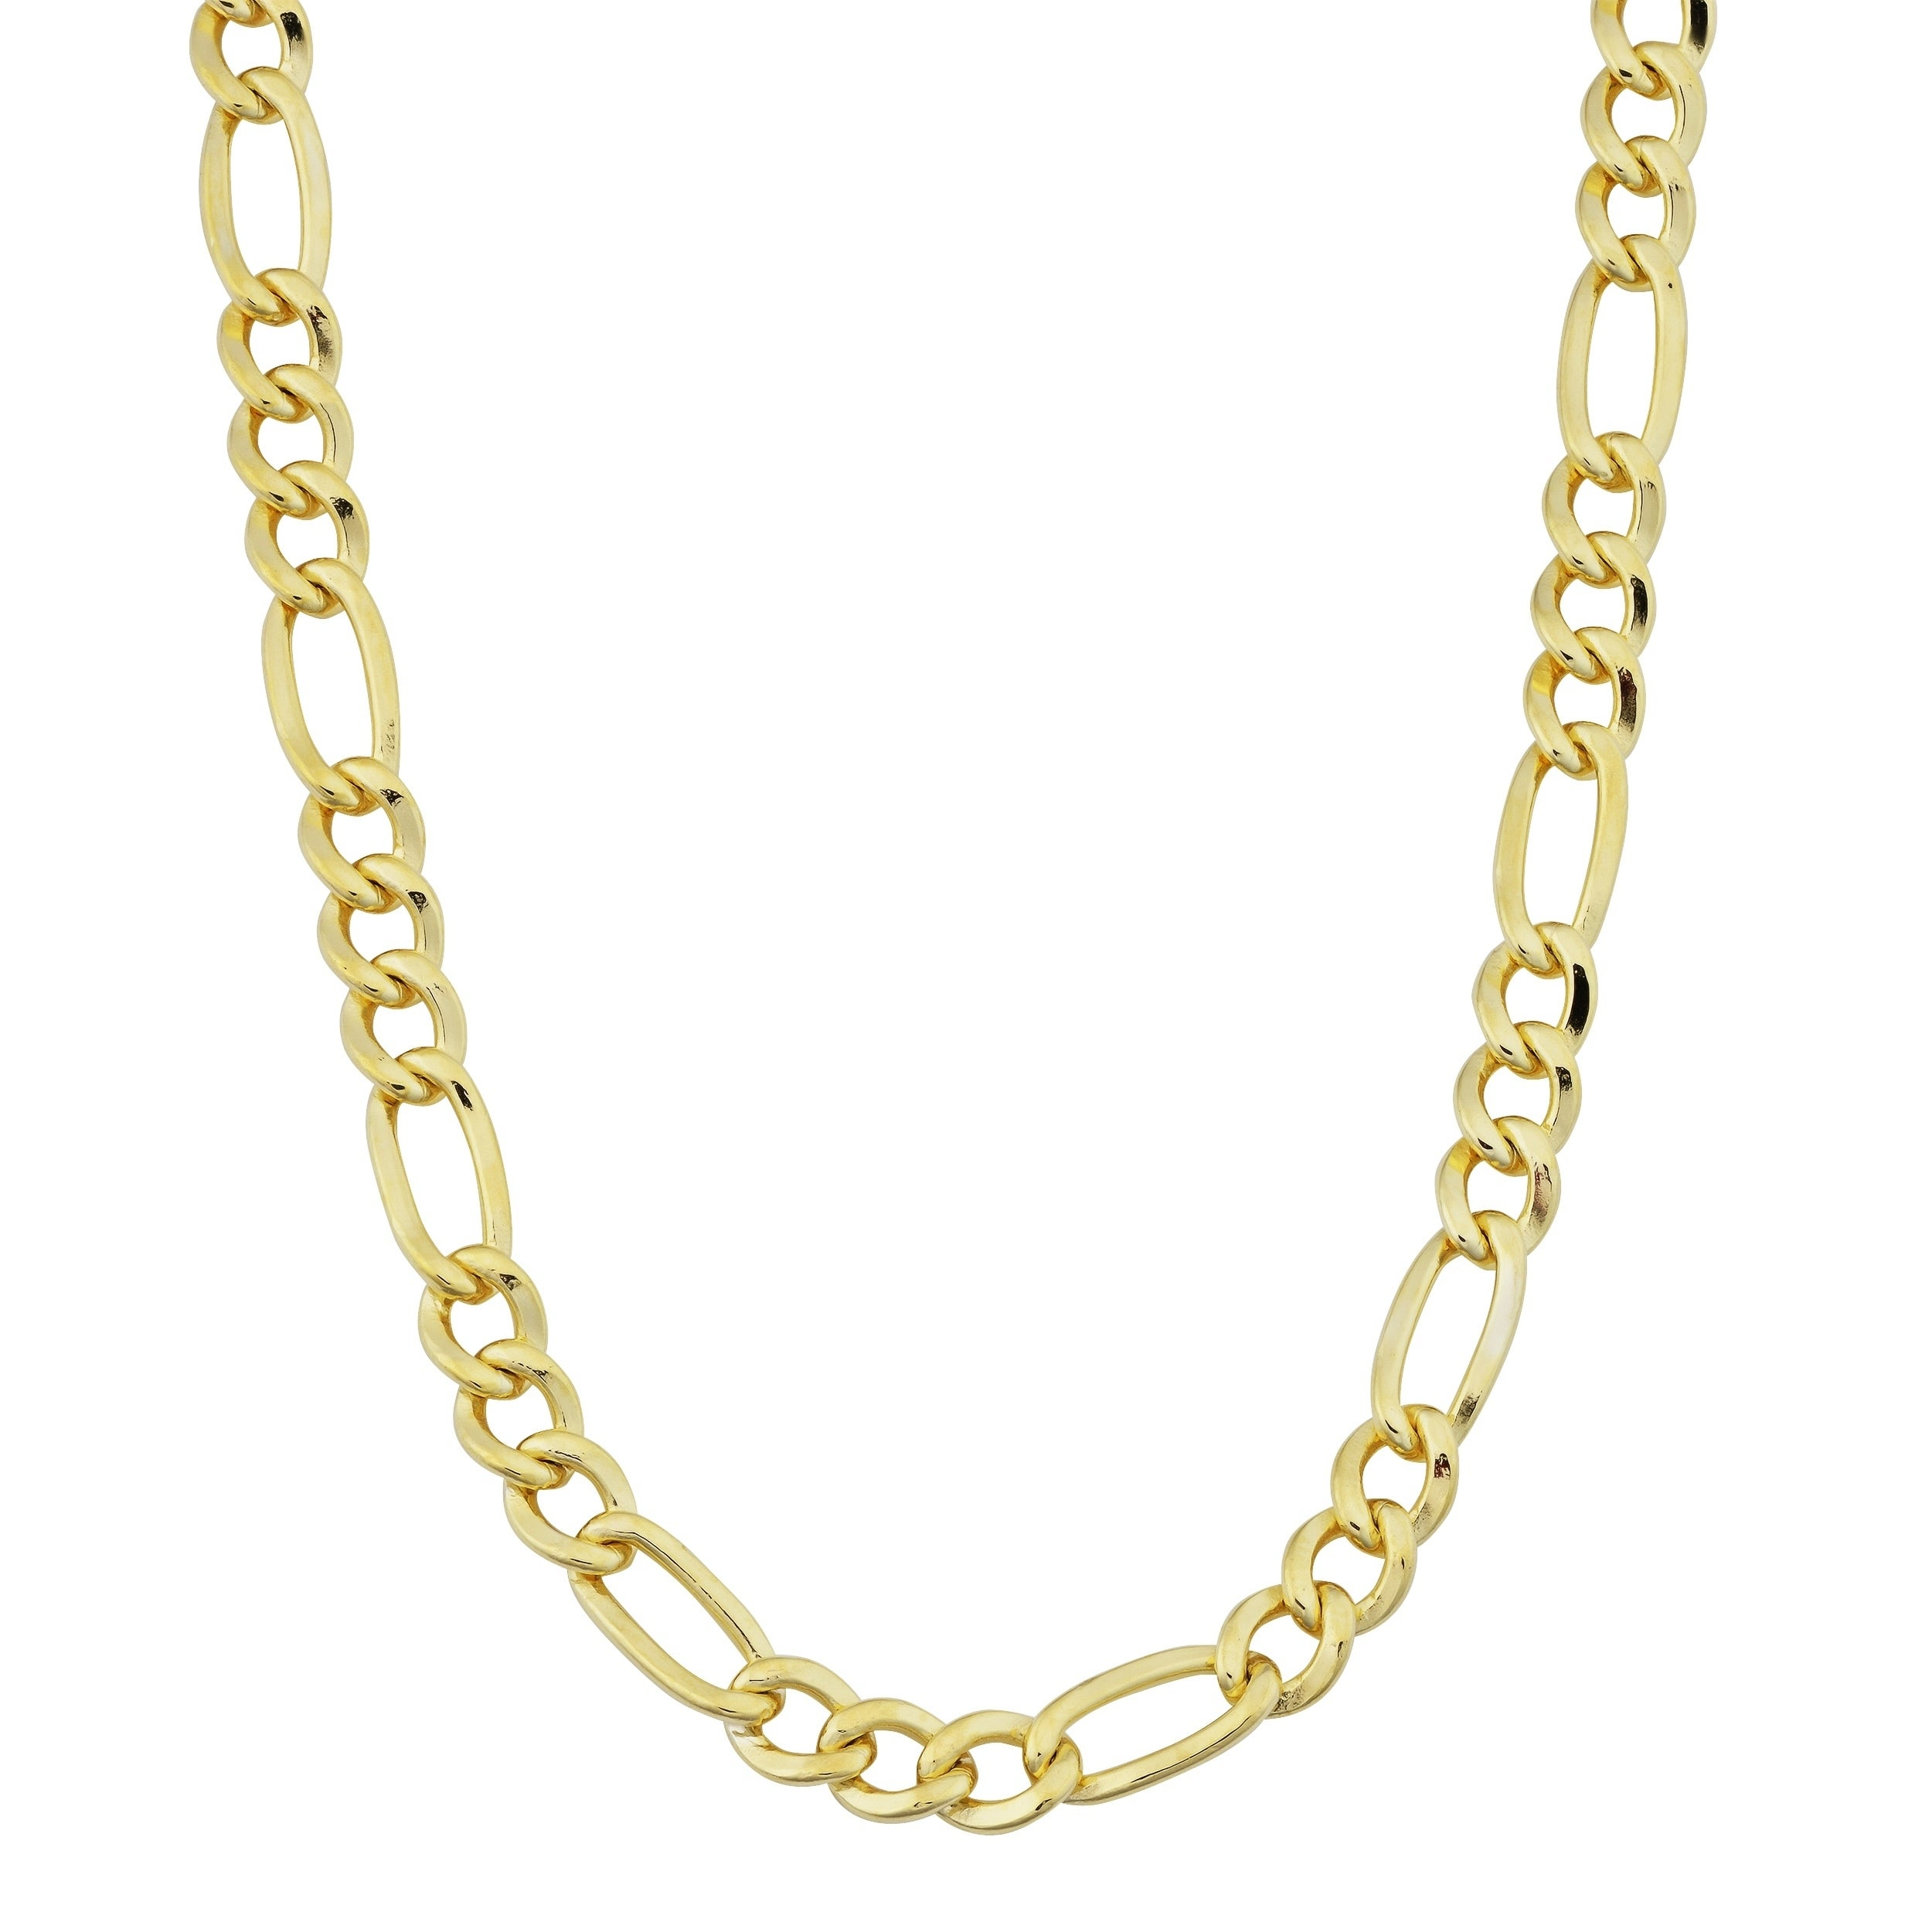 Shop 14k Yellow Gold Filled Figaro Link Chain Necklace 18 36 Inches On Sale Overstock 7310702